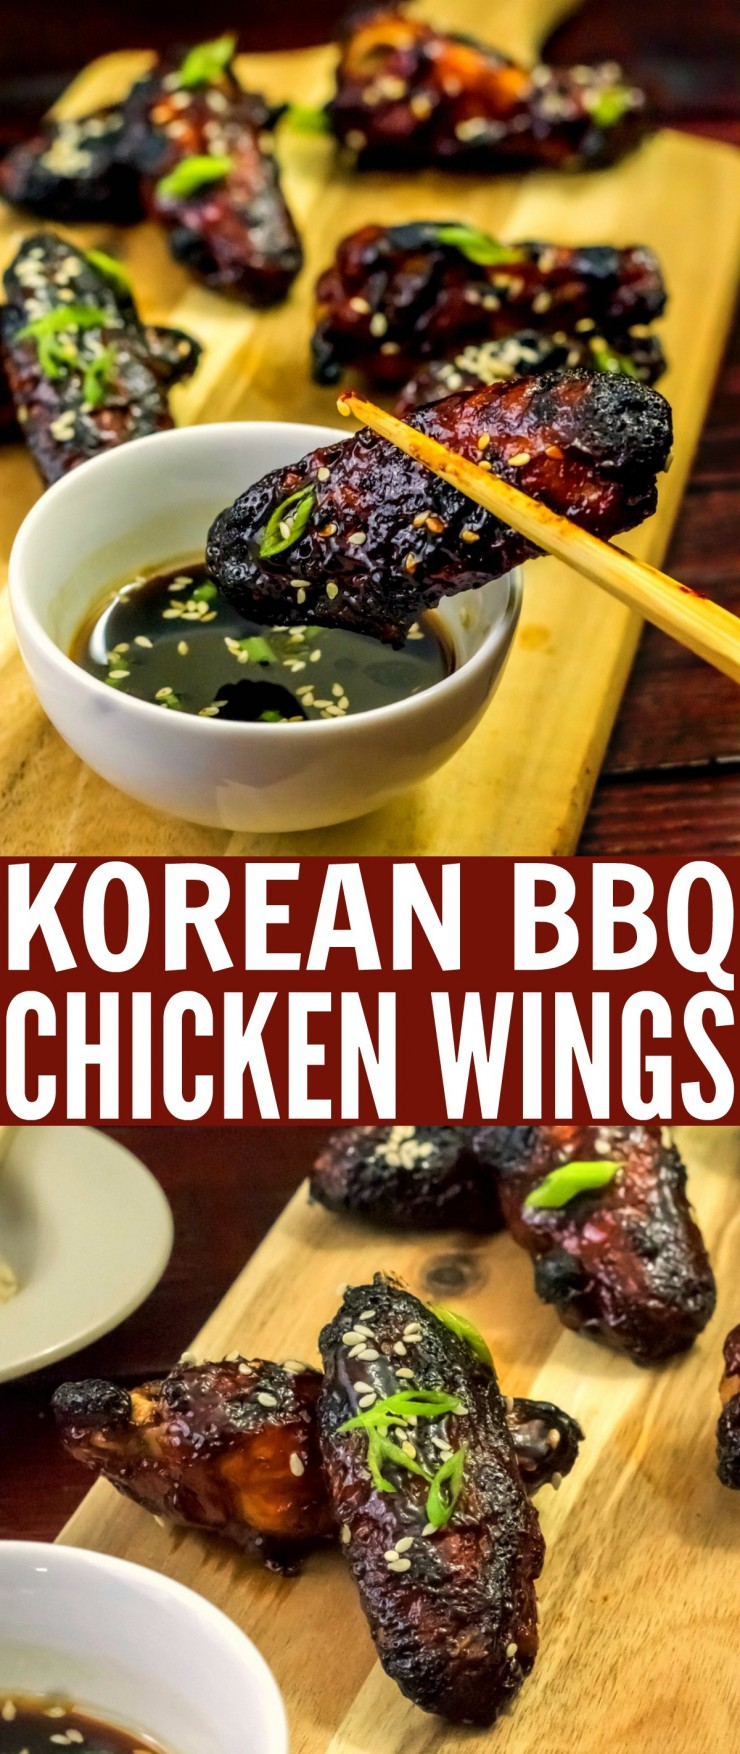 Spicy and flavourful, these Korean Barbecue Chicken Wings make a great choice for an appetizer. So much more than your typical wings, these Korean inspired baked chicken wings have a complex flavour profile that is addictive.